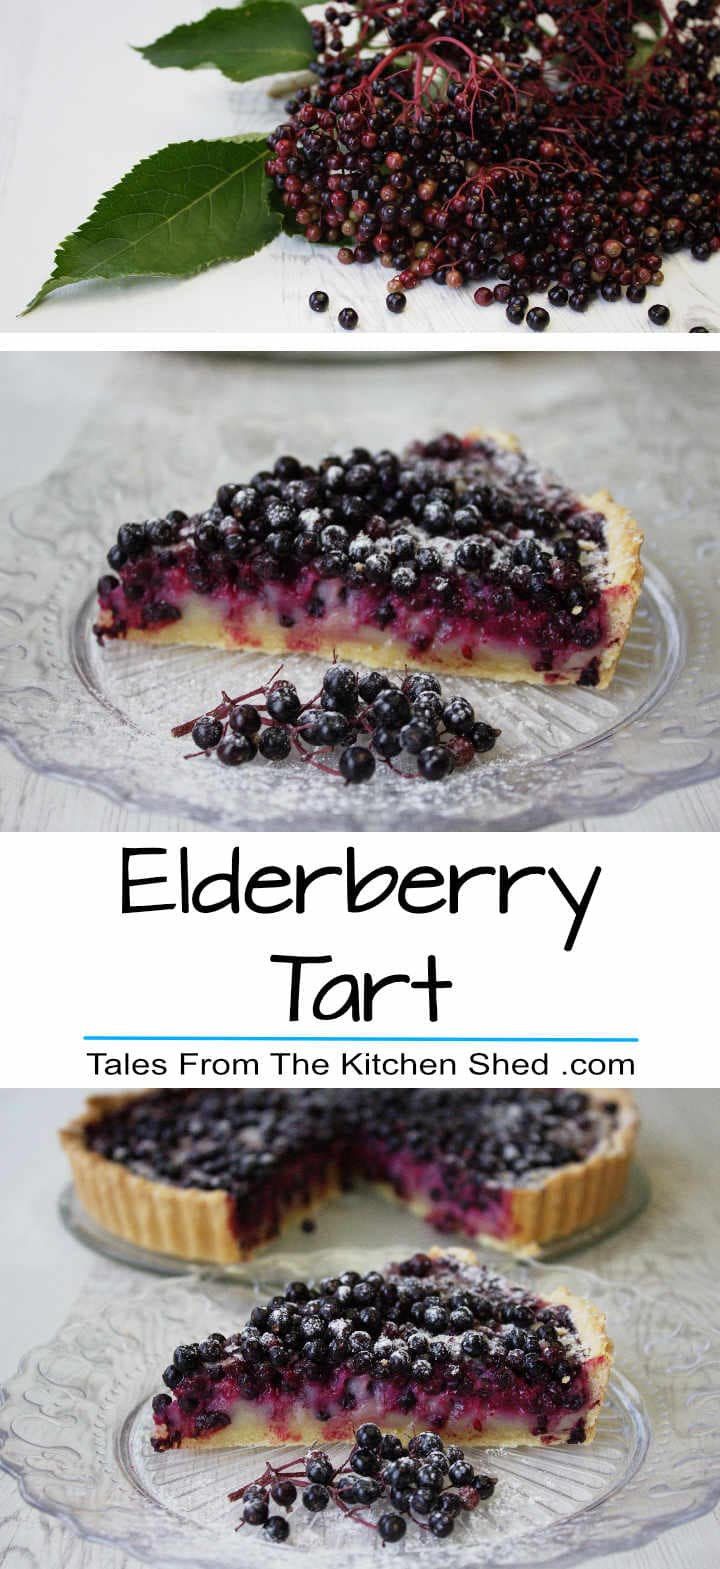 Elderberry Tart makes the most of this delicious foraged fruit. Elderberries & a cassis flavoured custard fill this butter pastry shell - Yum!